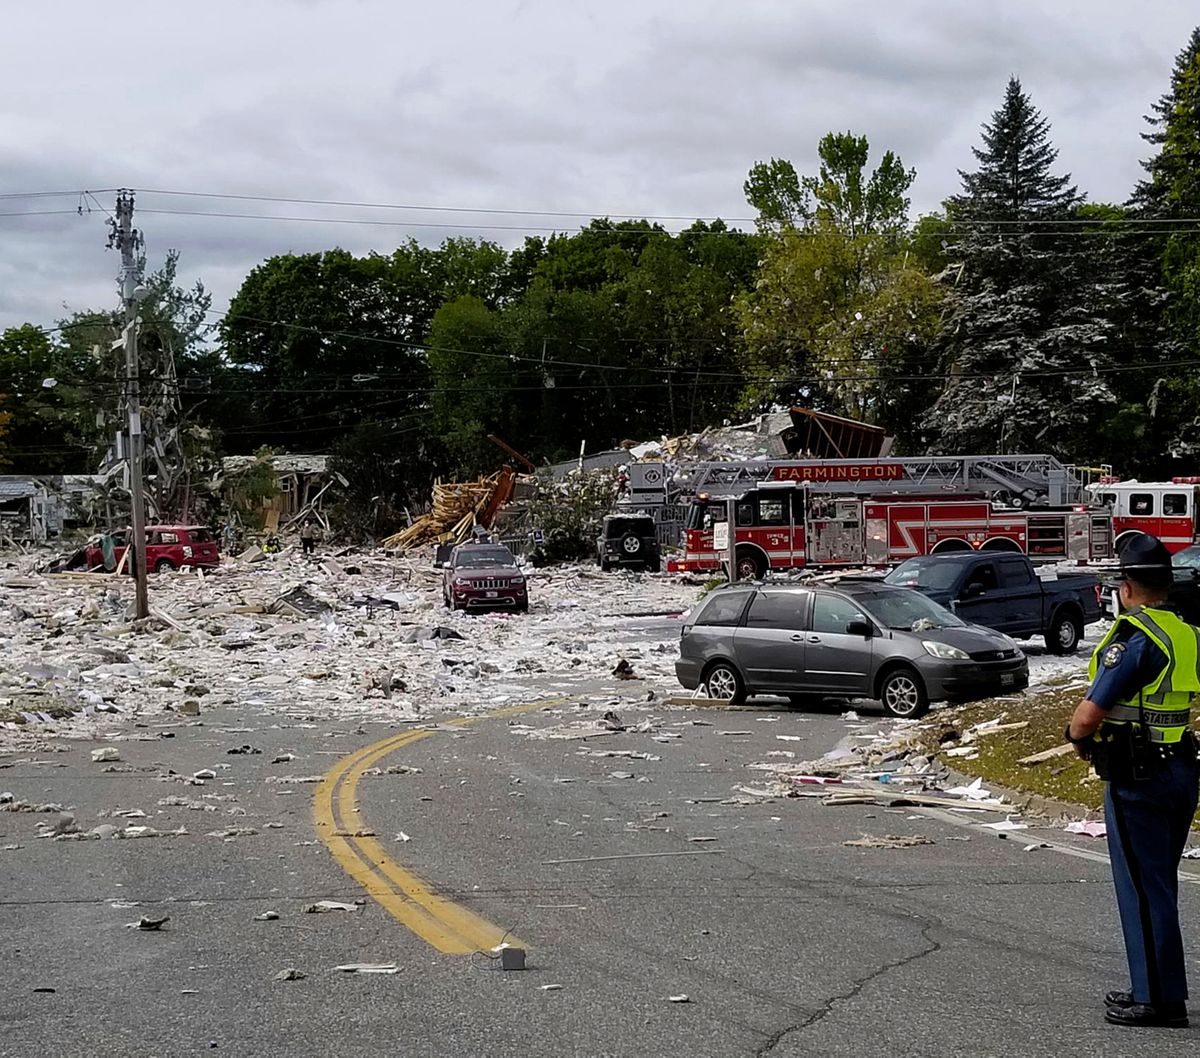 Firefighter killed, several injured in ME building explosion